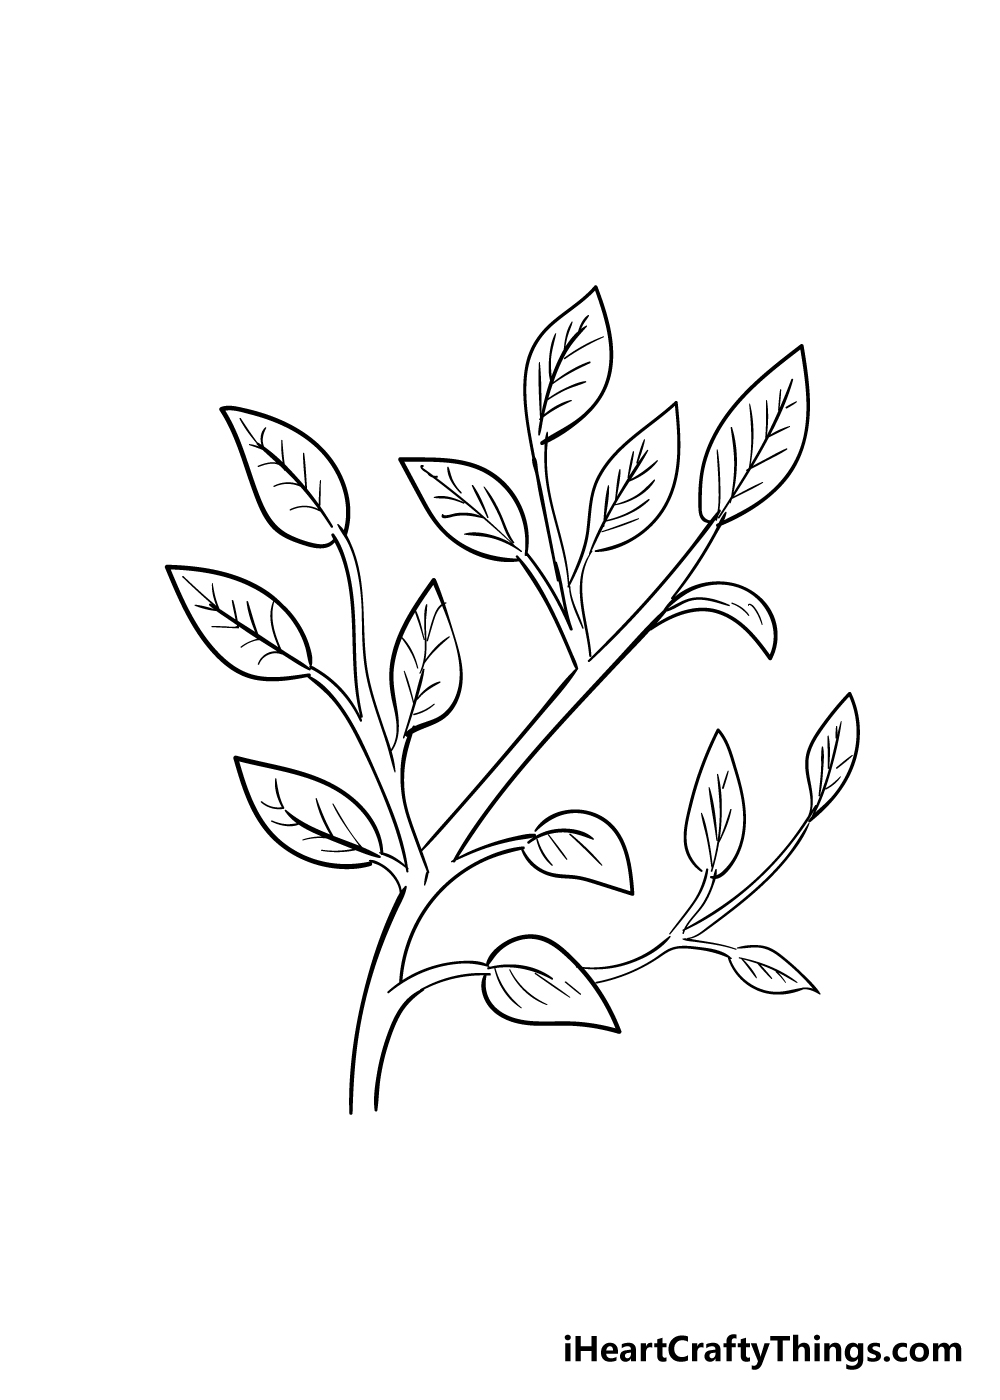 leaves on a tree drawing step 6